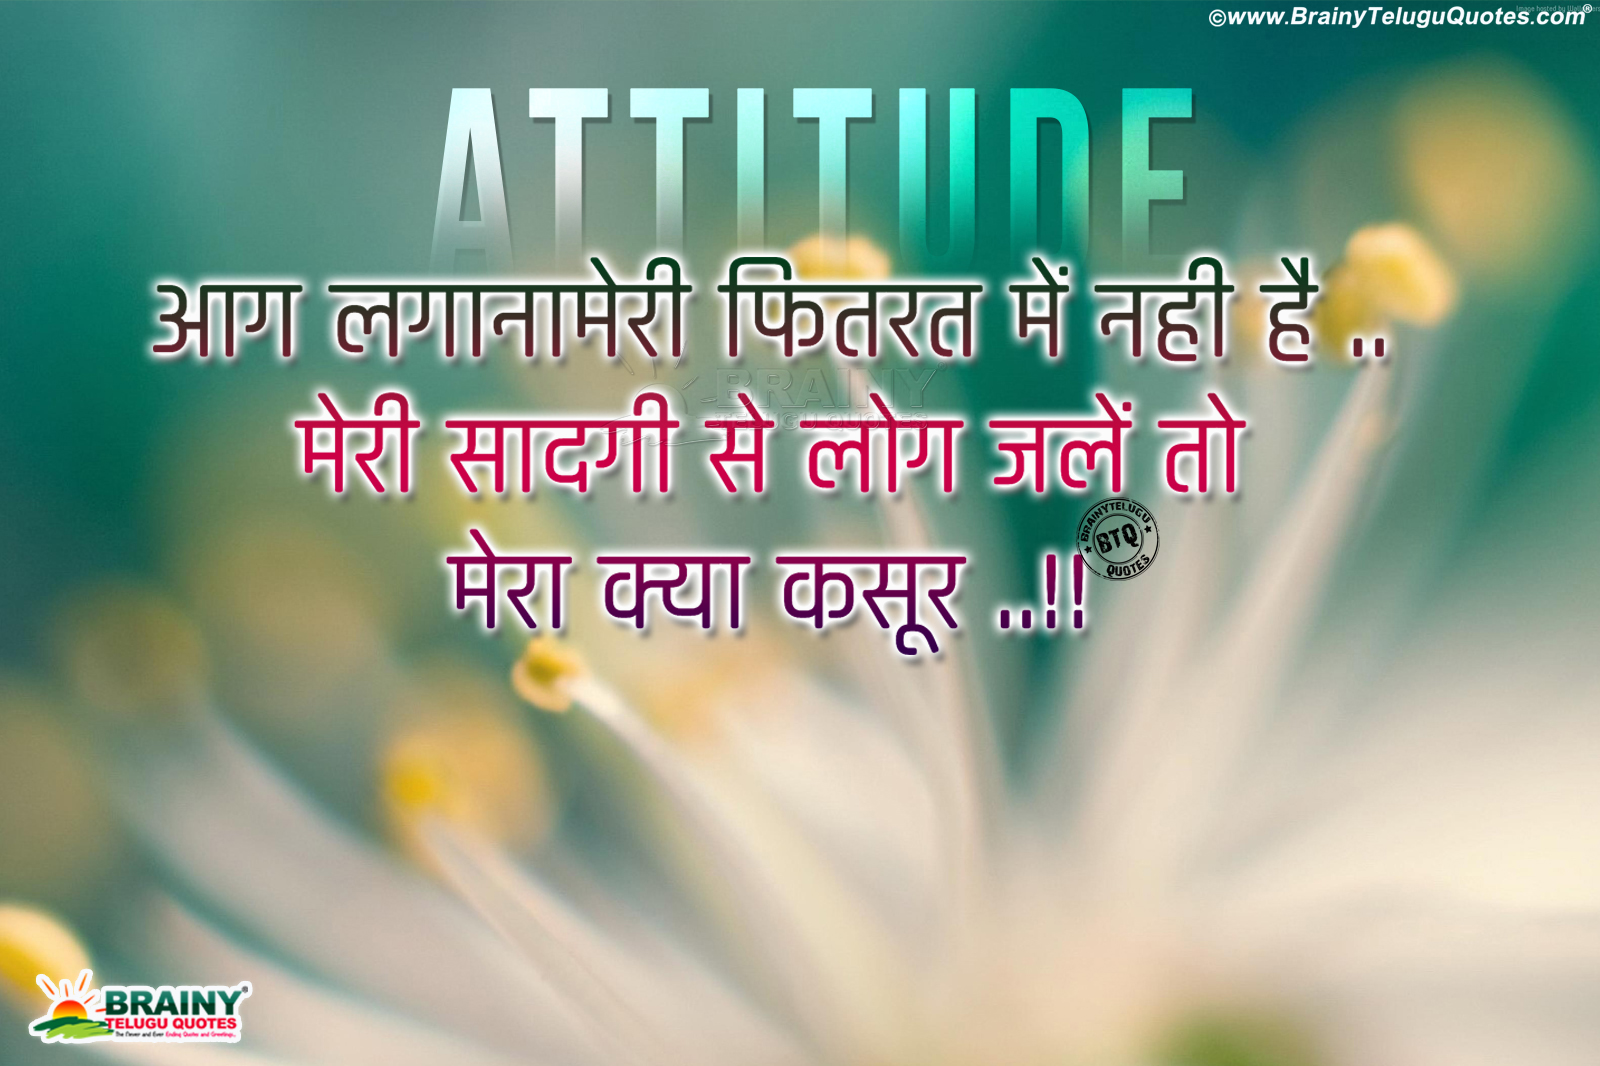 Best Ever Attitude Quotes in Hindi-Famous Hindi ...  Best Ever Attit...